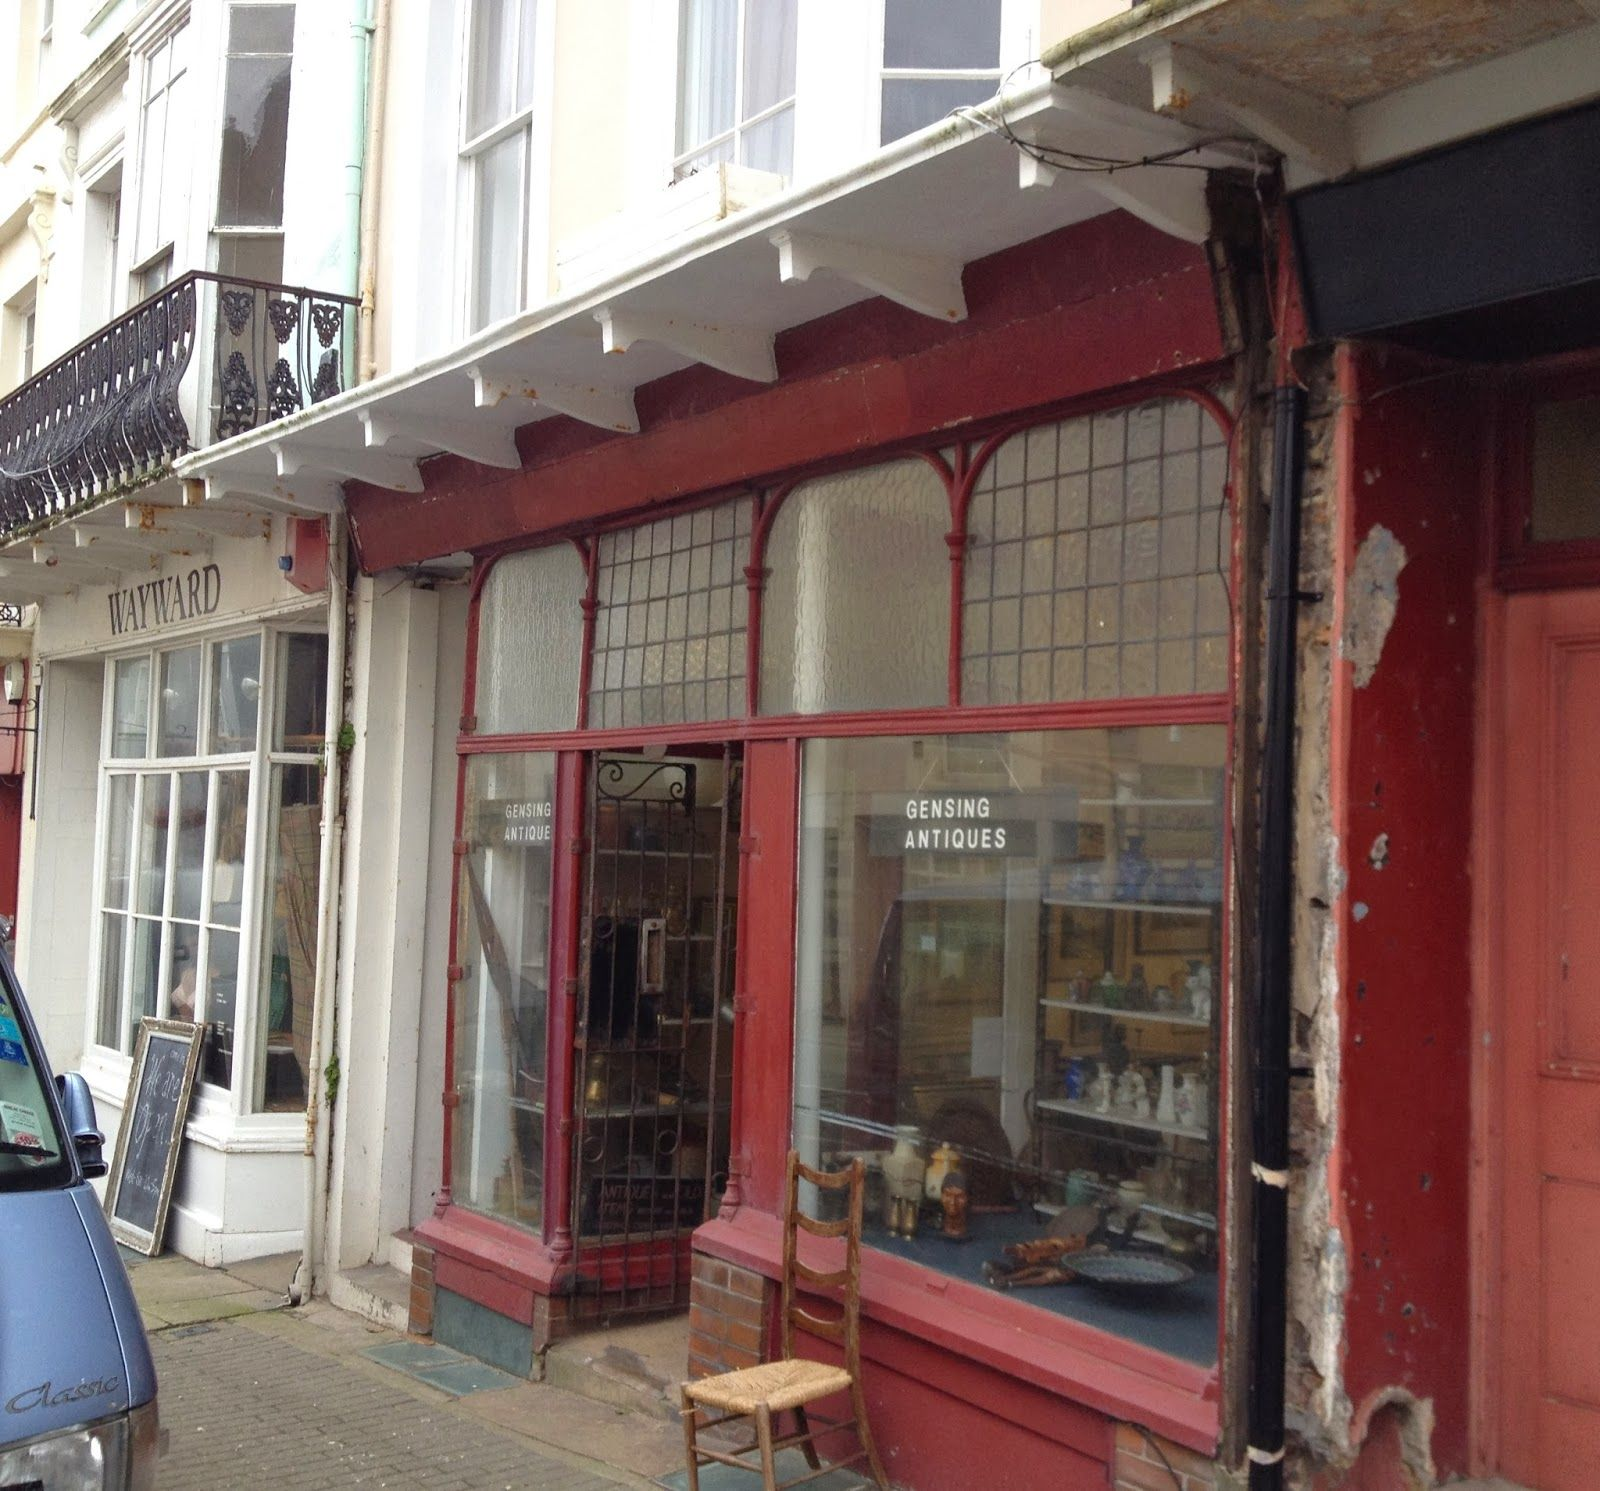 Hastings Battleaxe : Antiques, vintage shops and galleries in St Leonard's - a walk with Hastings Battleaxe